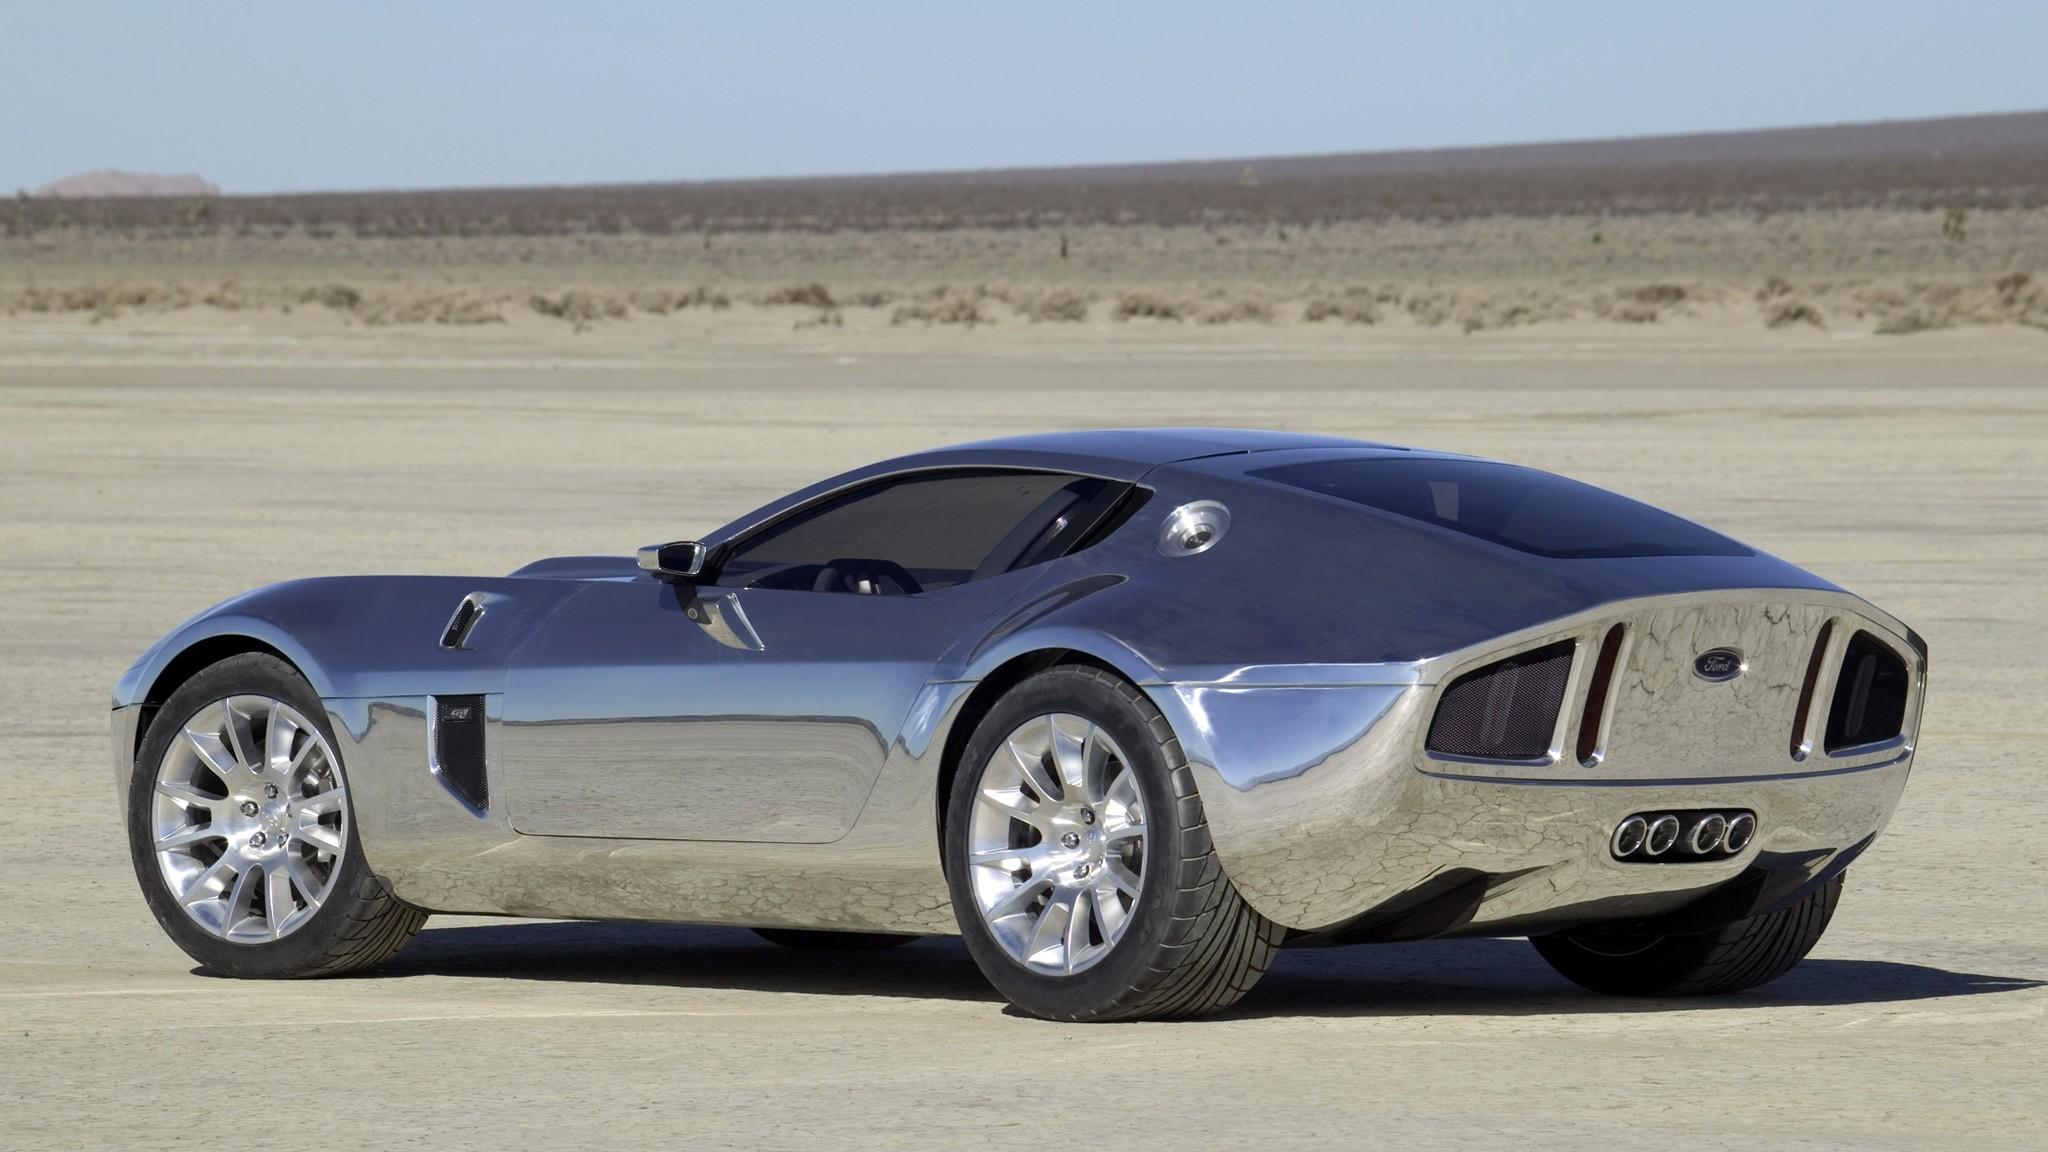 Reborn Ford Shelby GR-1 to pack supercharged V8 with 700bhp+